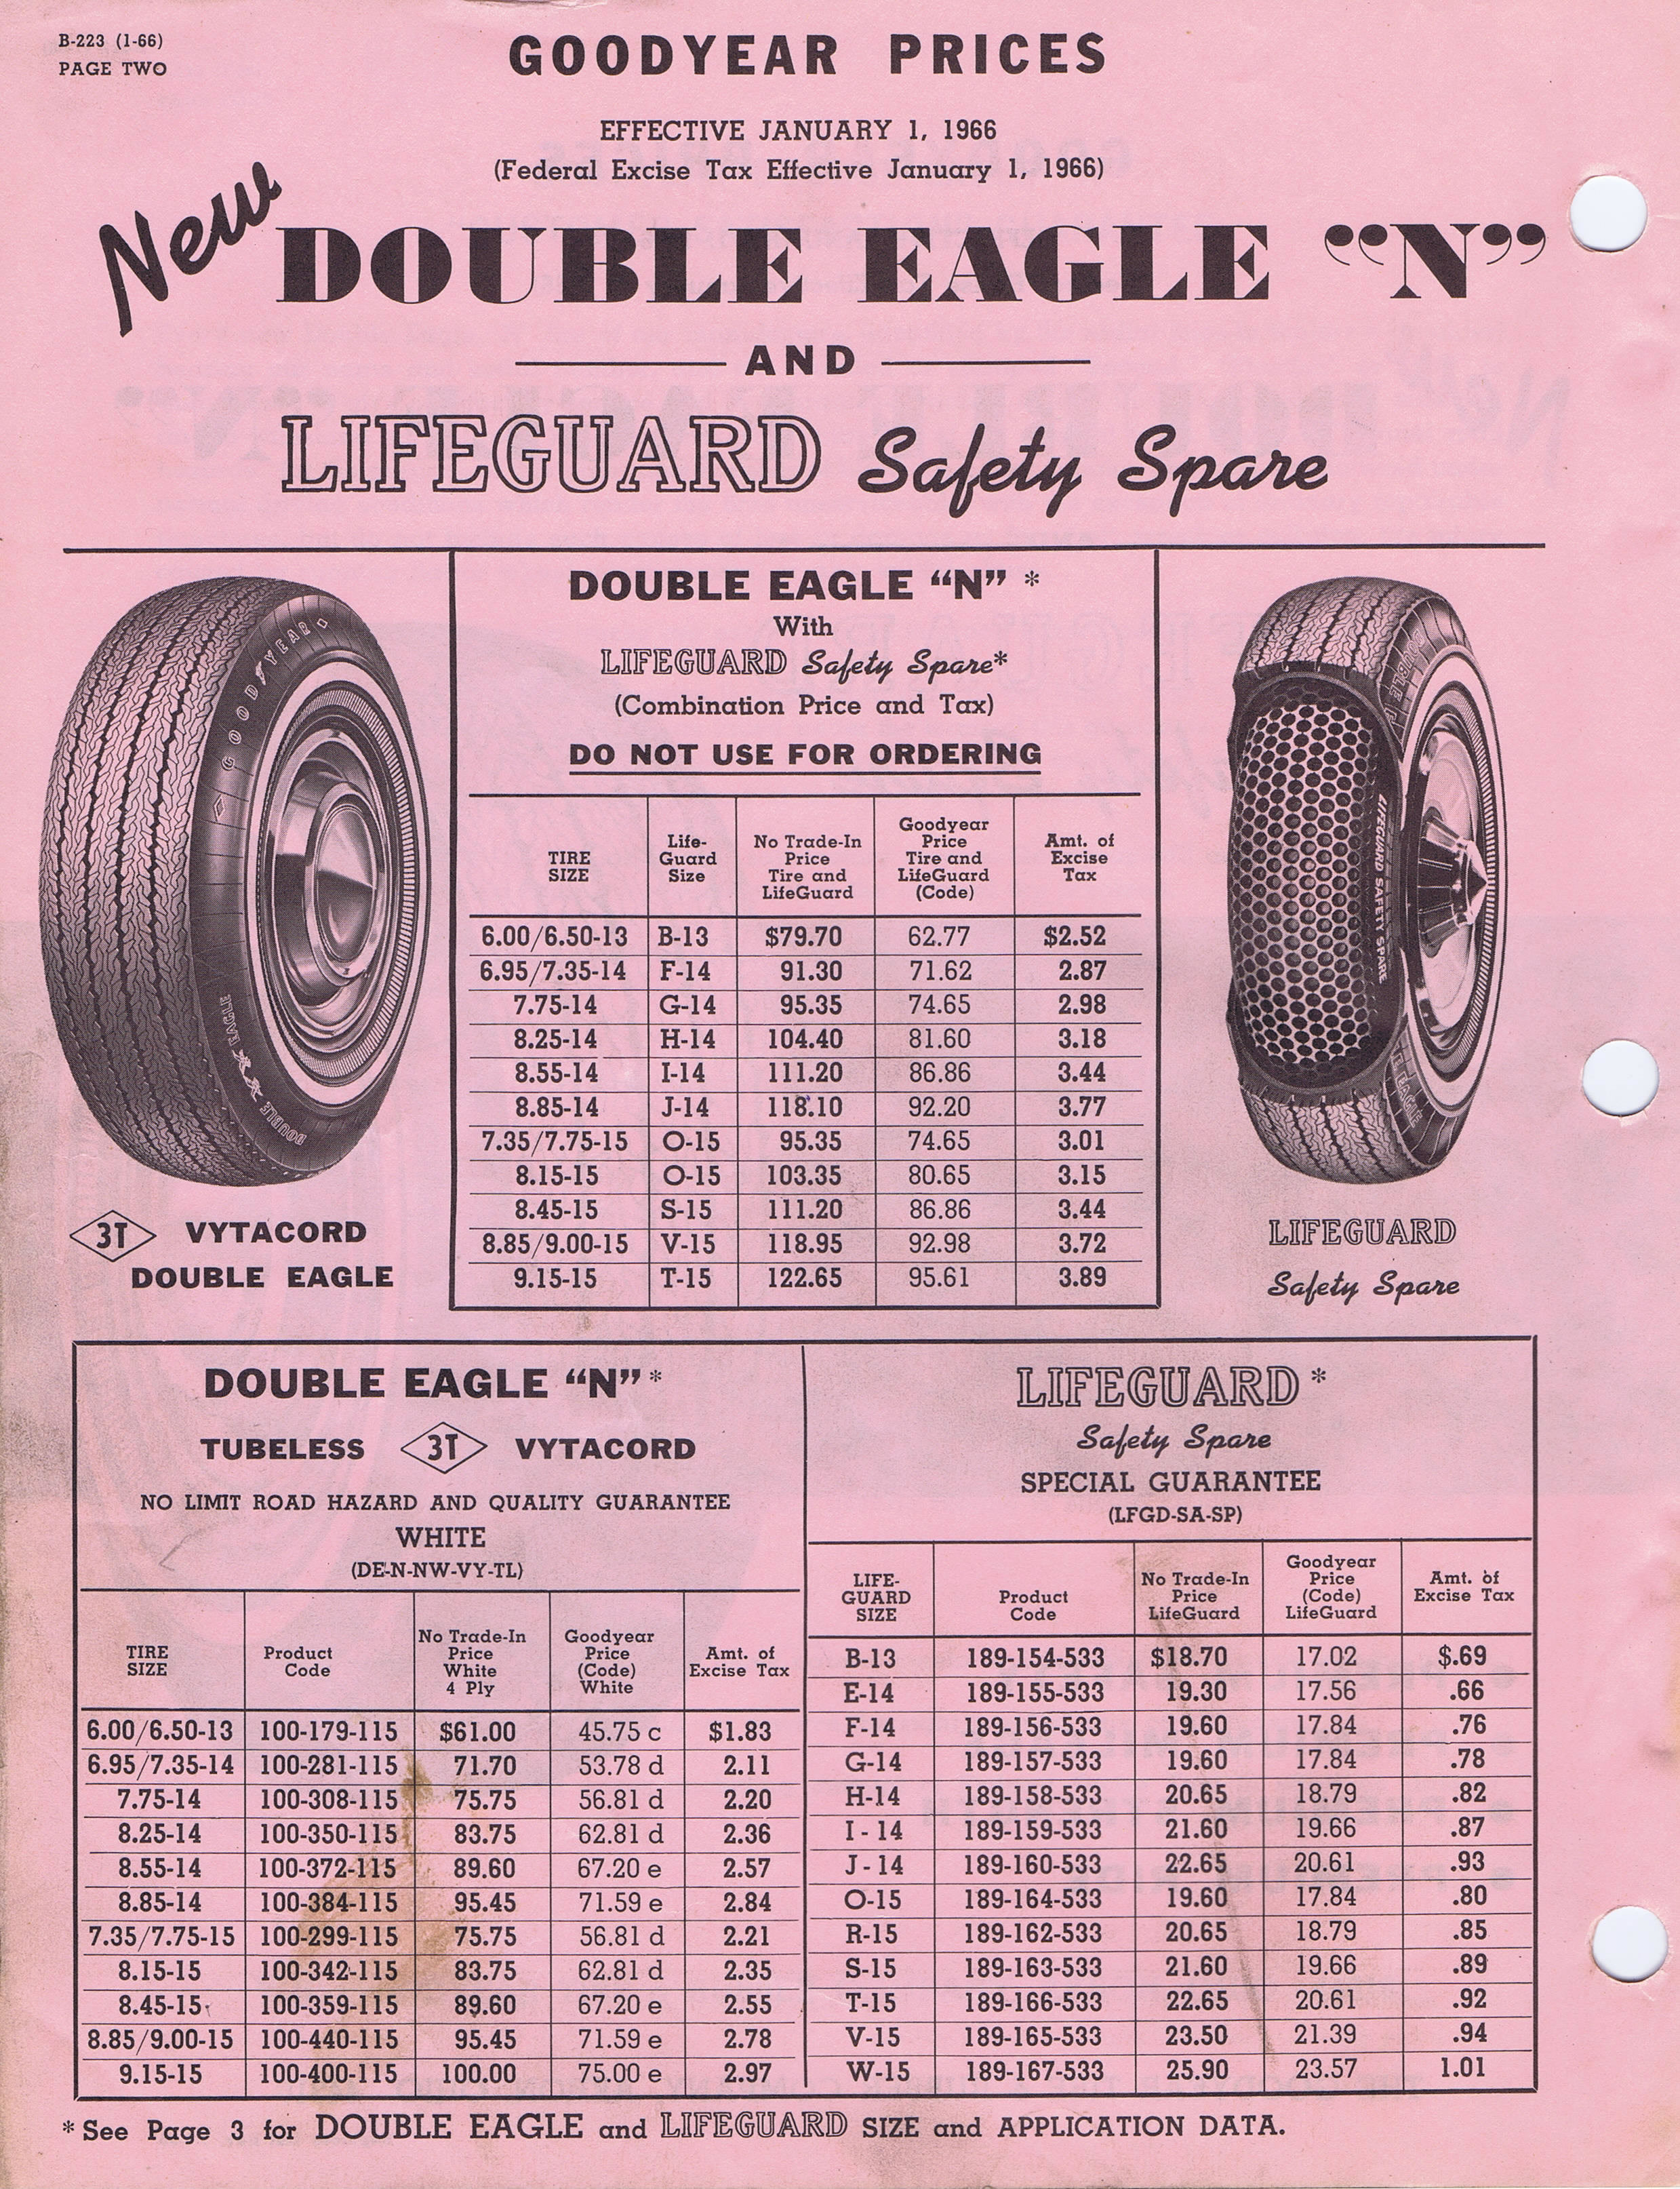 1966 Goodyear Double Eagle Prices / Goodyear_DoubleEagle ... Goodyear Tires